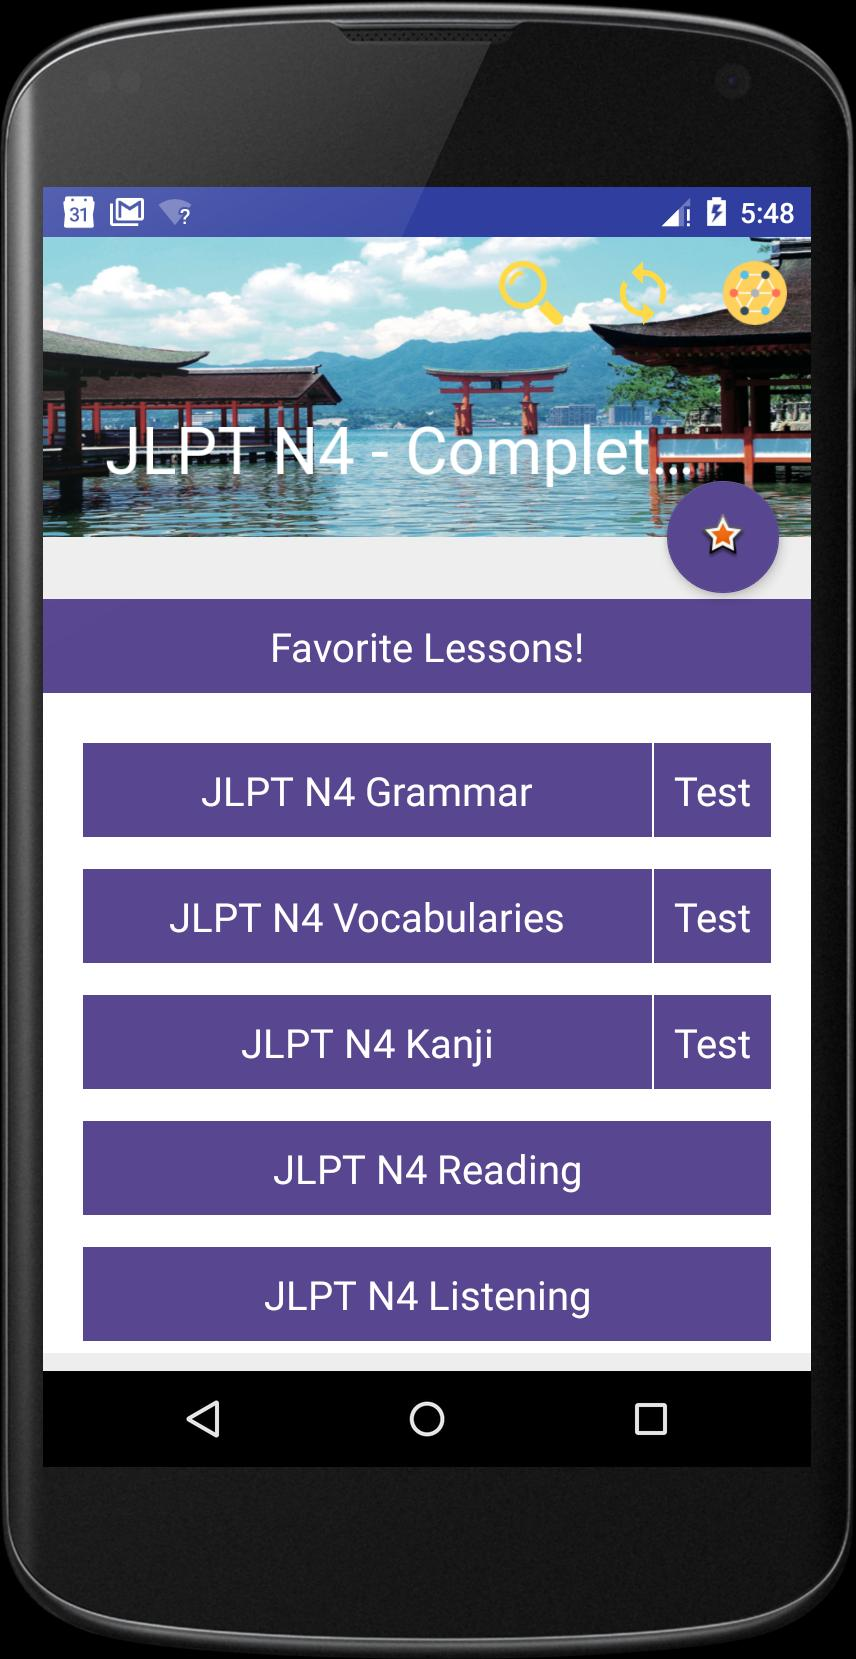 JLPT N4 - Complete Lessons for Android - APK Download